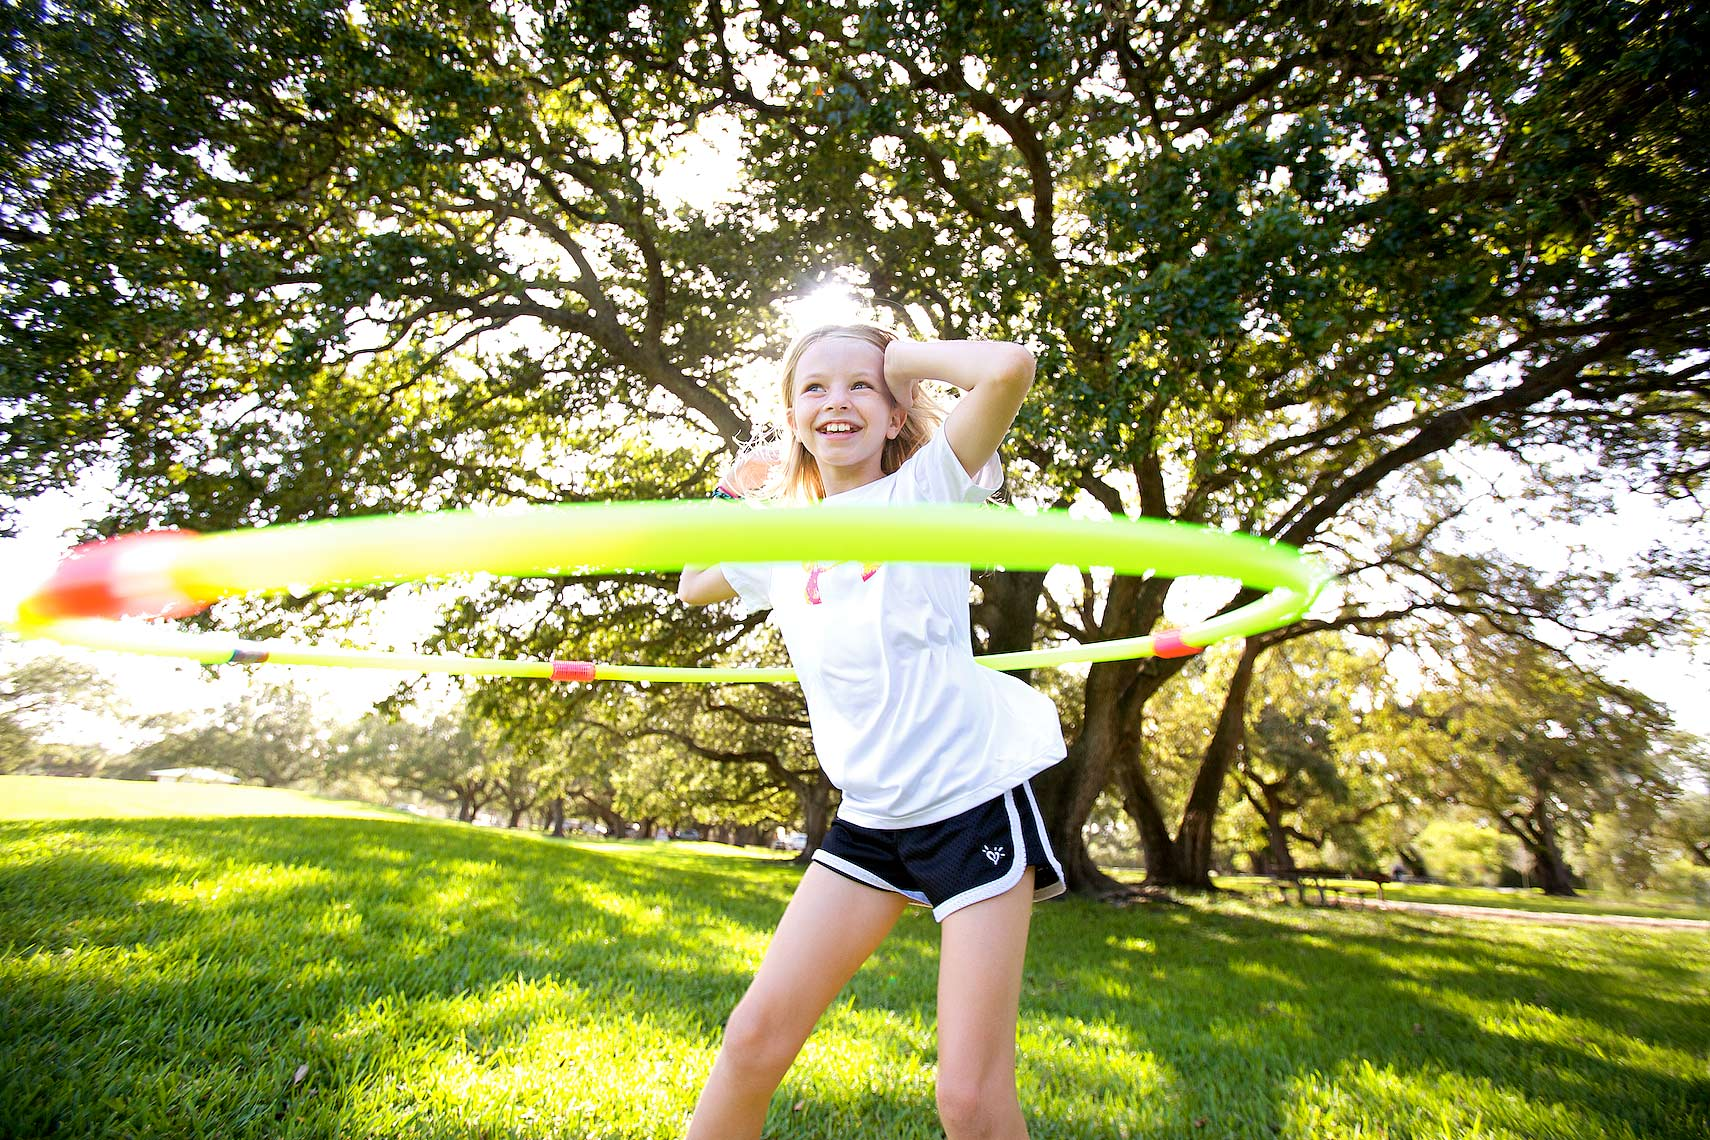 young girl in park with hula hoop_Robert-Holland.jpg